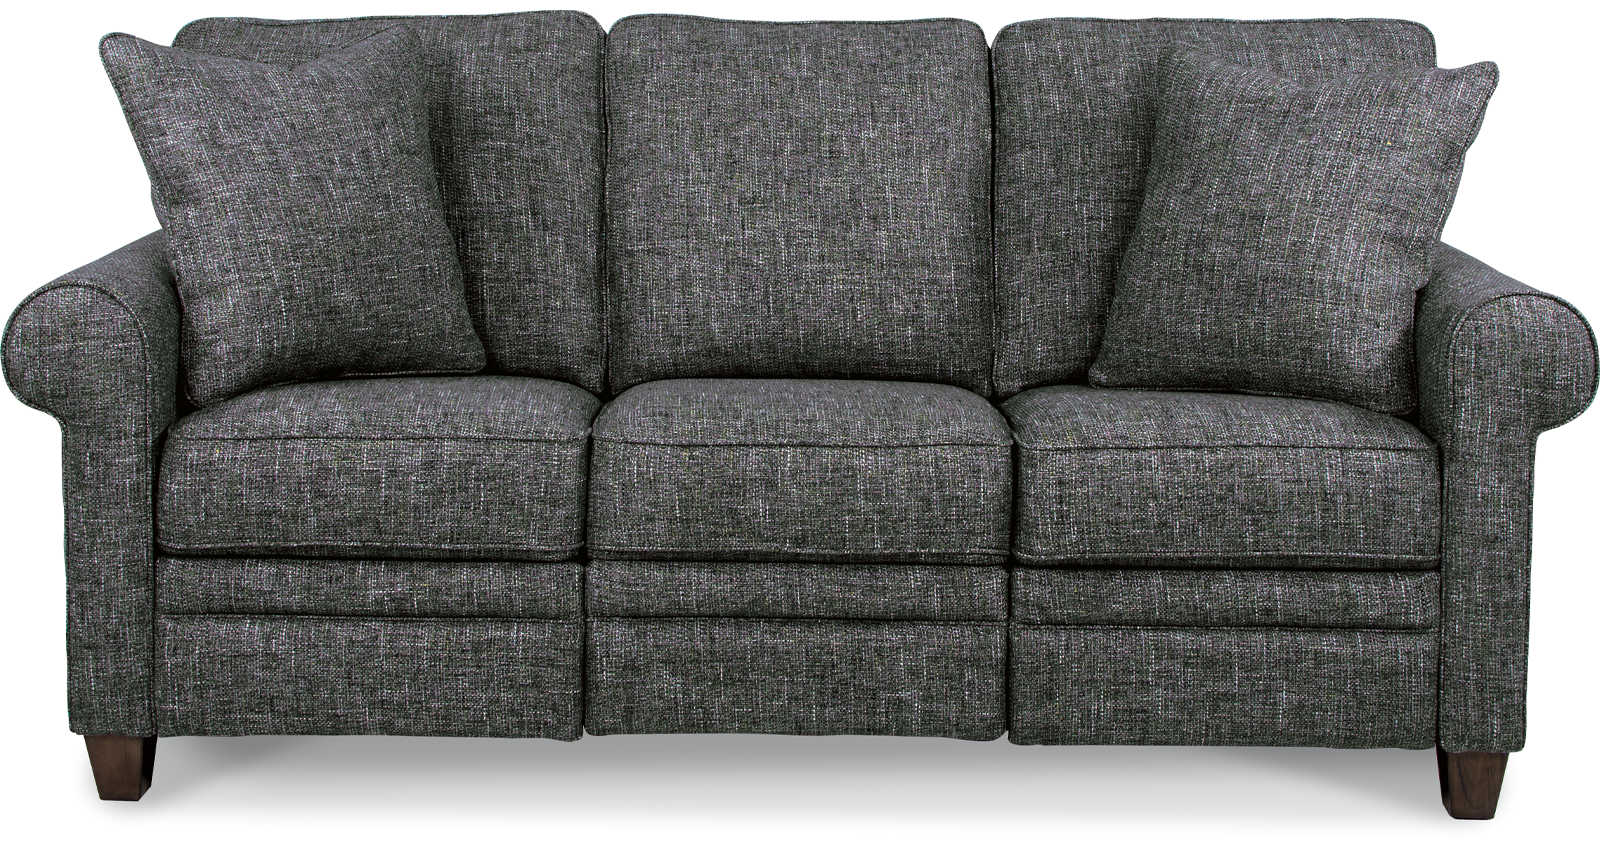 Luke duo reclining sofa front view